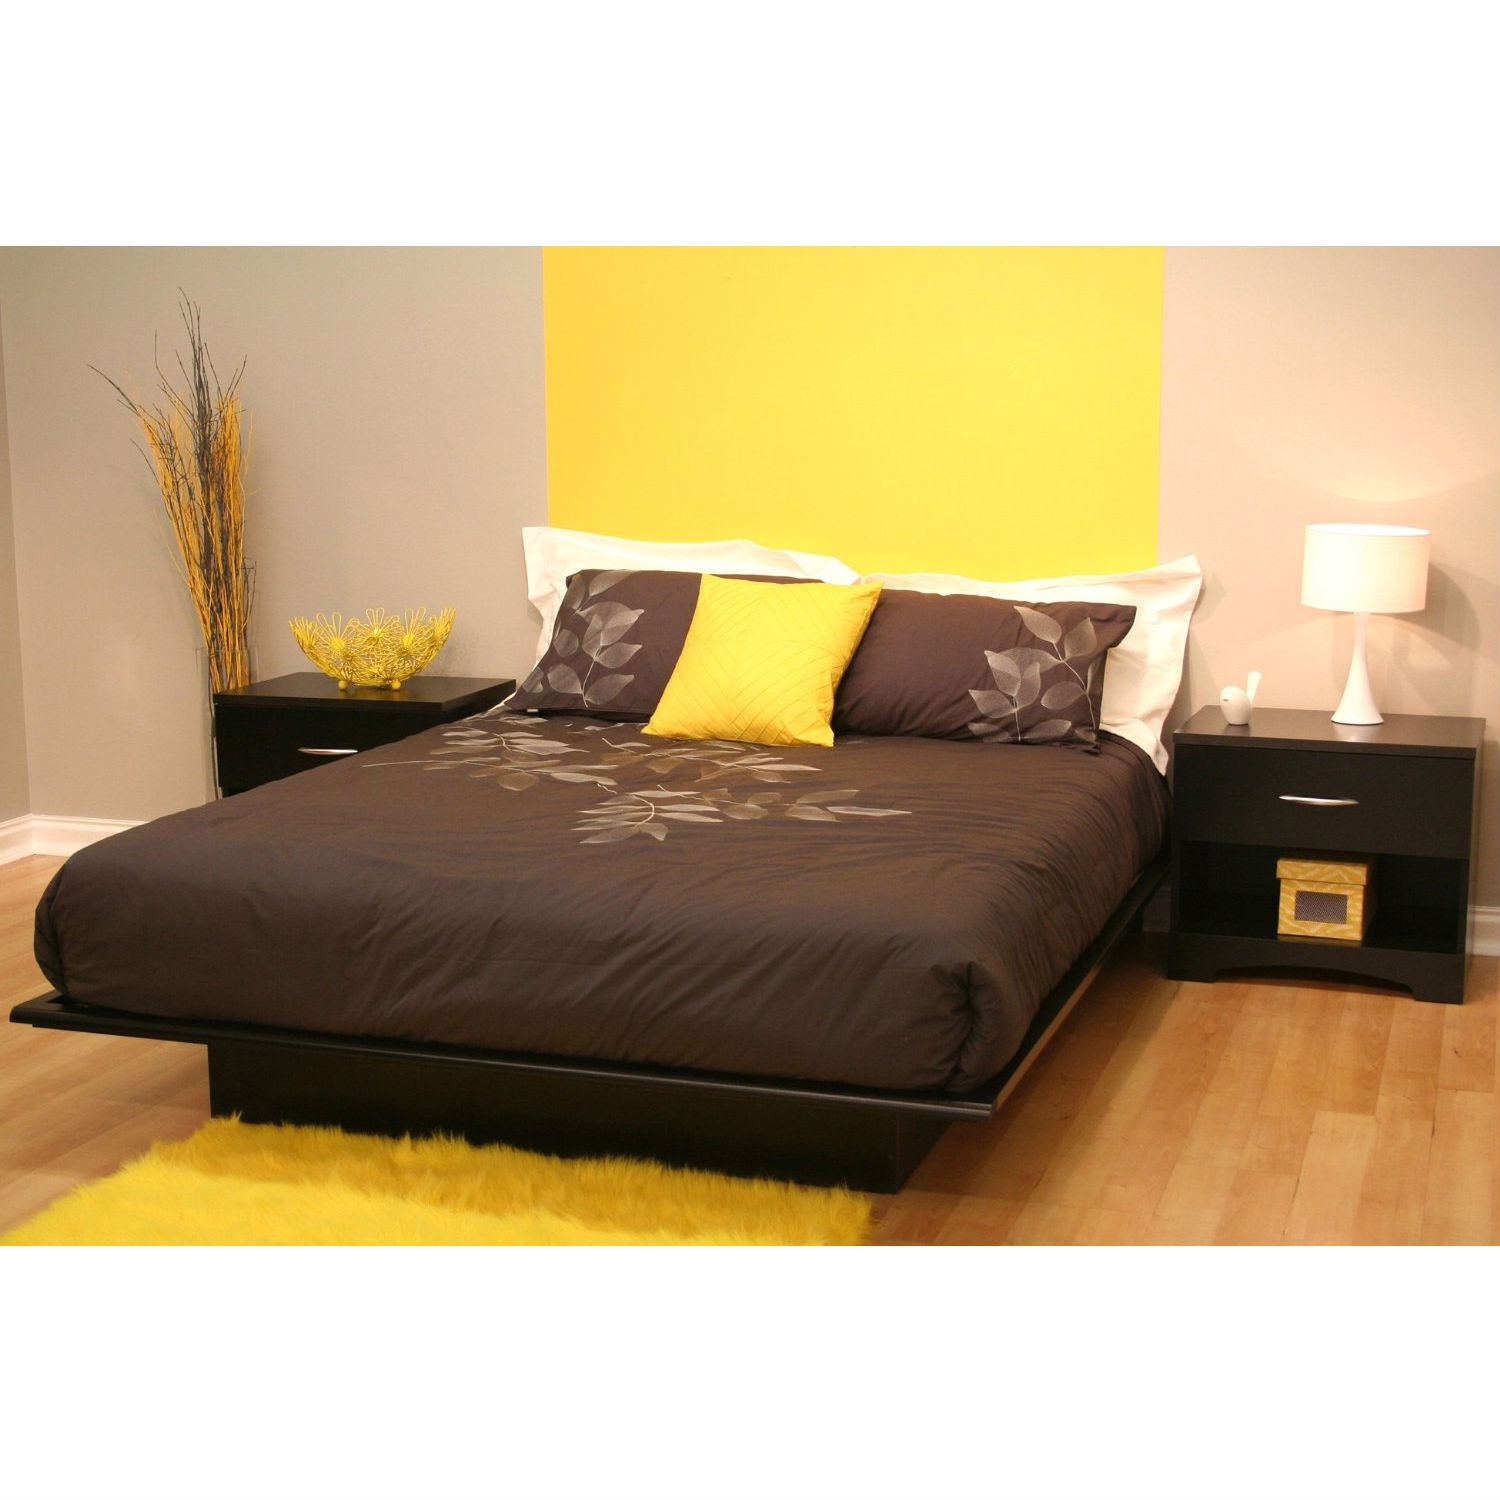 Queen Size Modern Platform Bed Frame In Black Wood Finish |  FastFurnishings.com